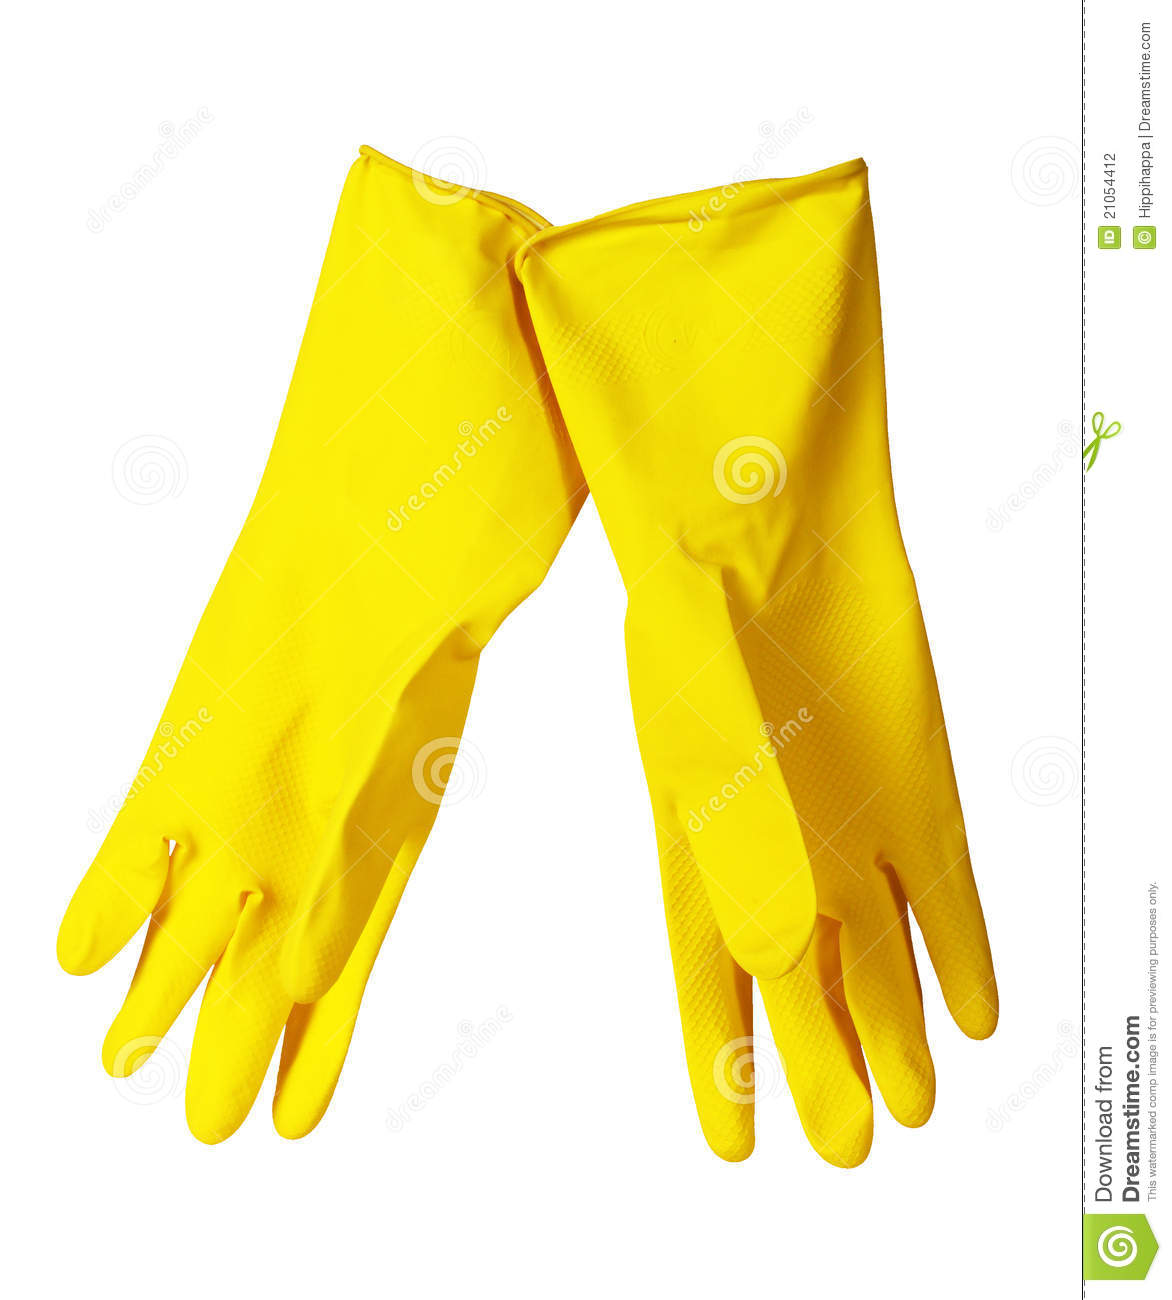 kitchen gloves magazines yellow stock photo image of cleanliness 21054412